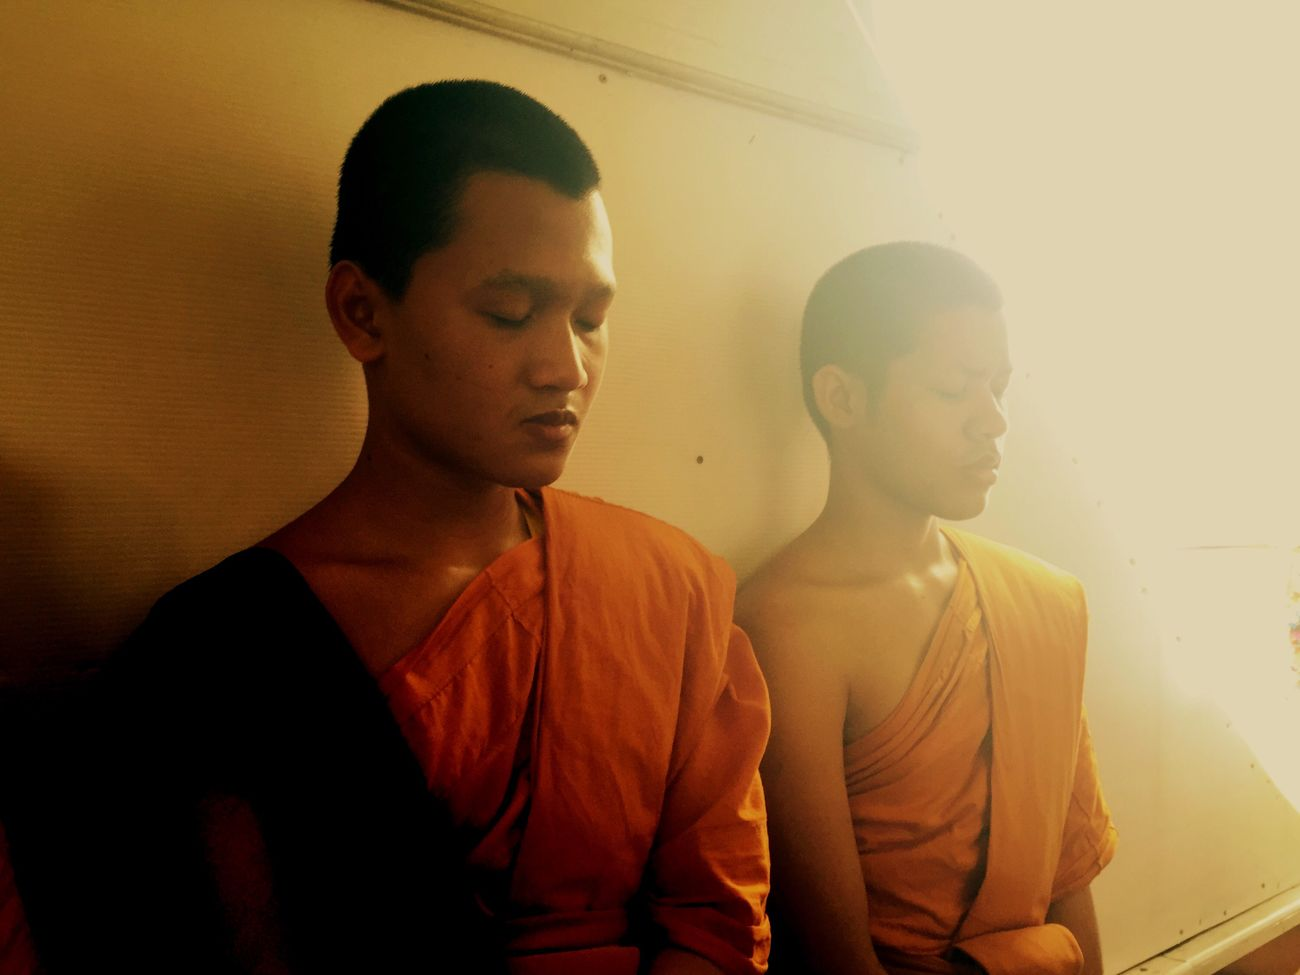 Thaiculture Buddhism Emotional Photography Picoftheday